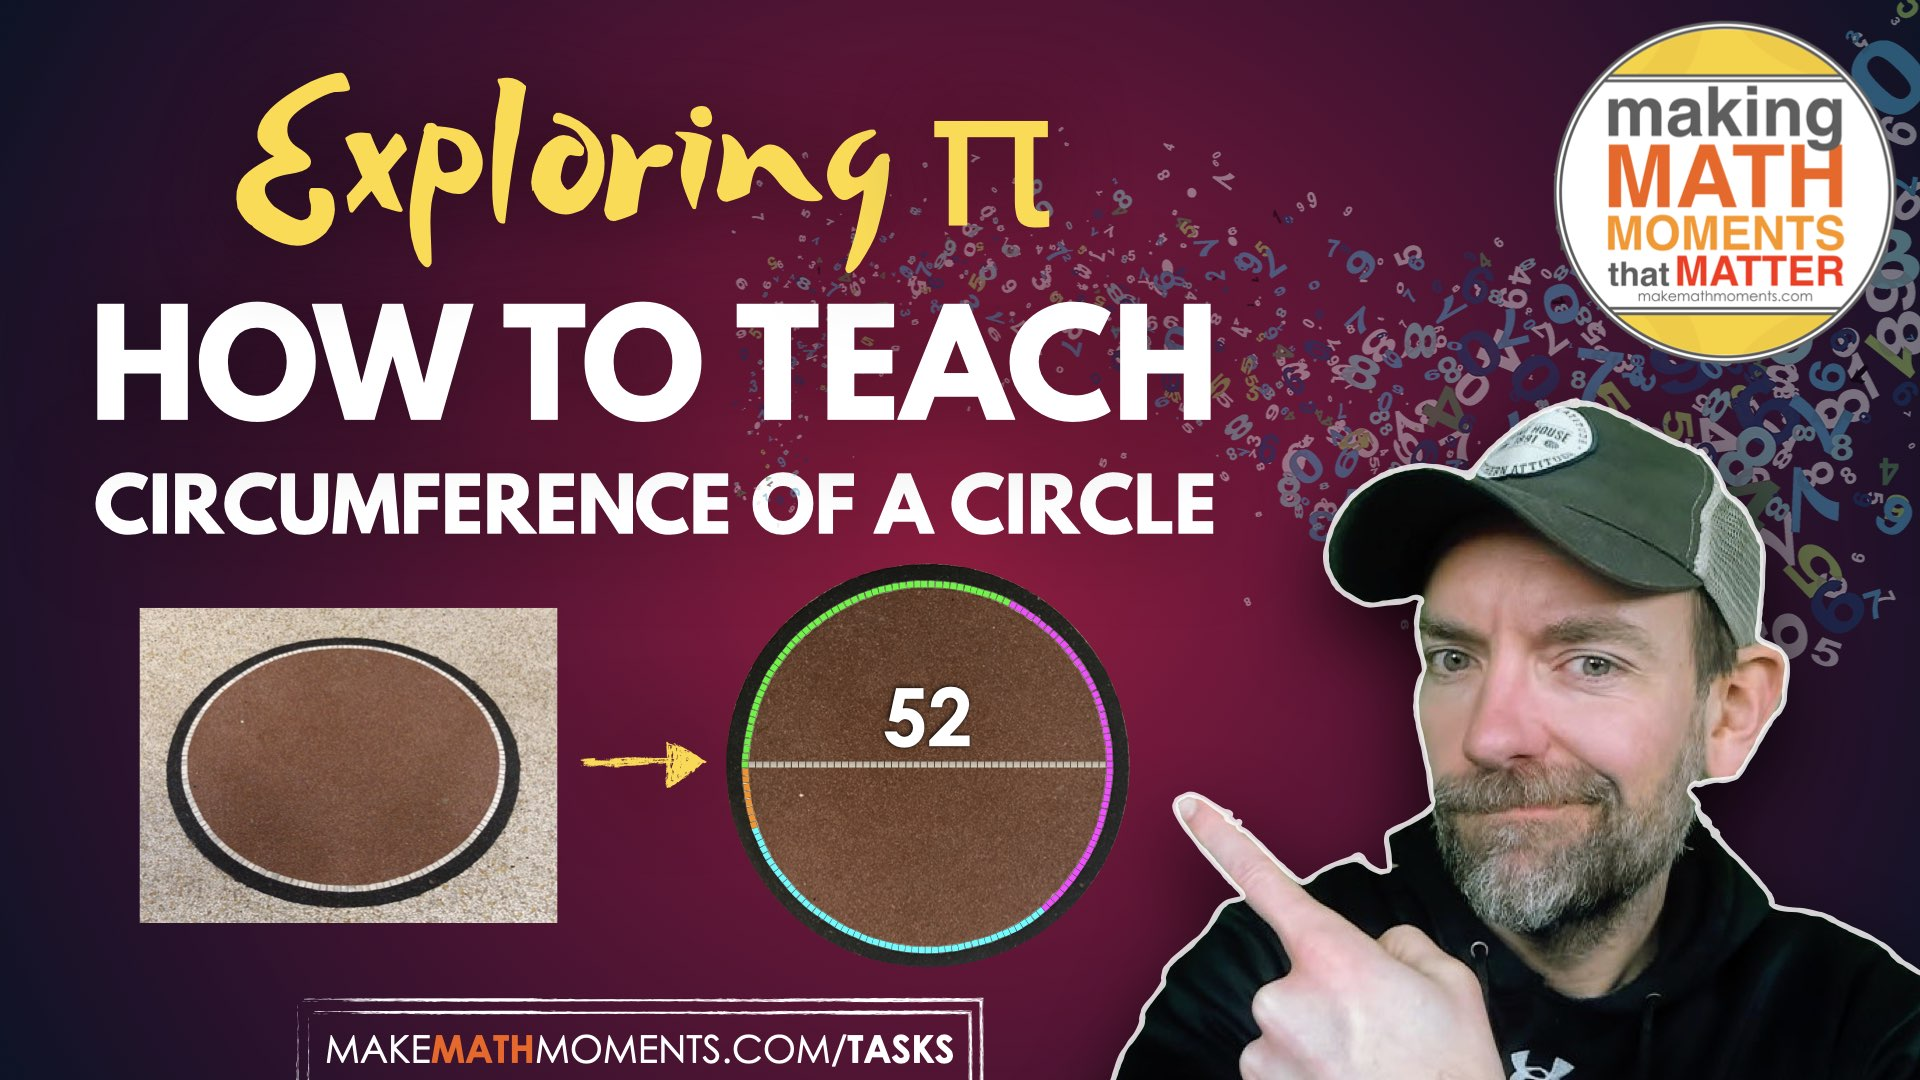 How To Teach Circumference of a Circle: Classroom Sneak Peek